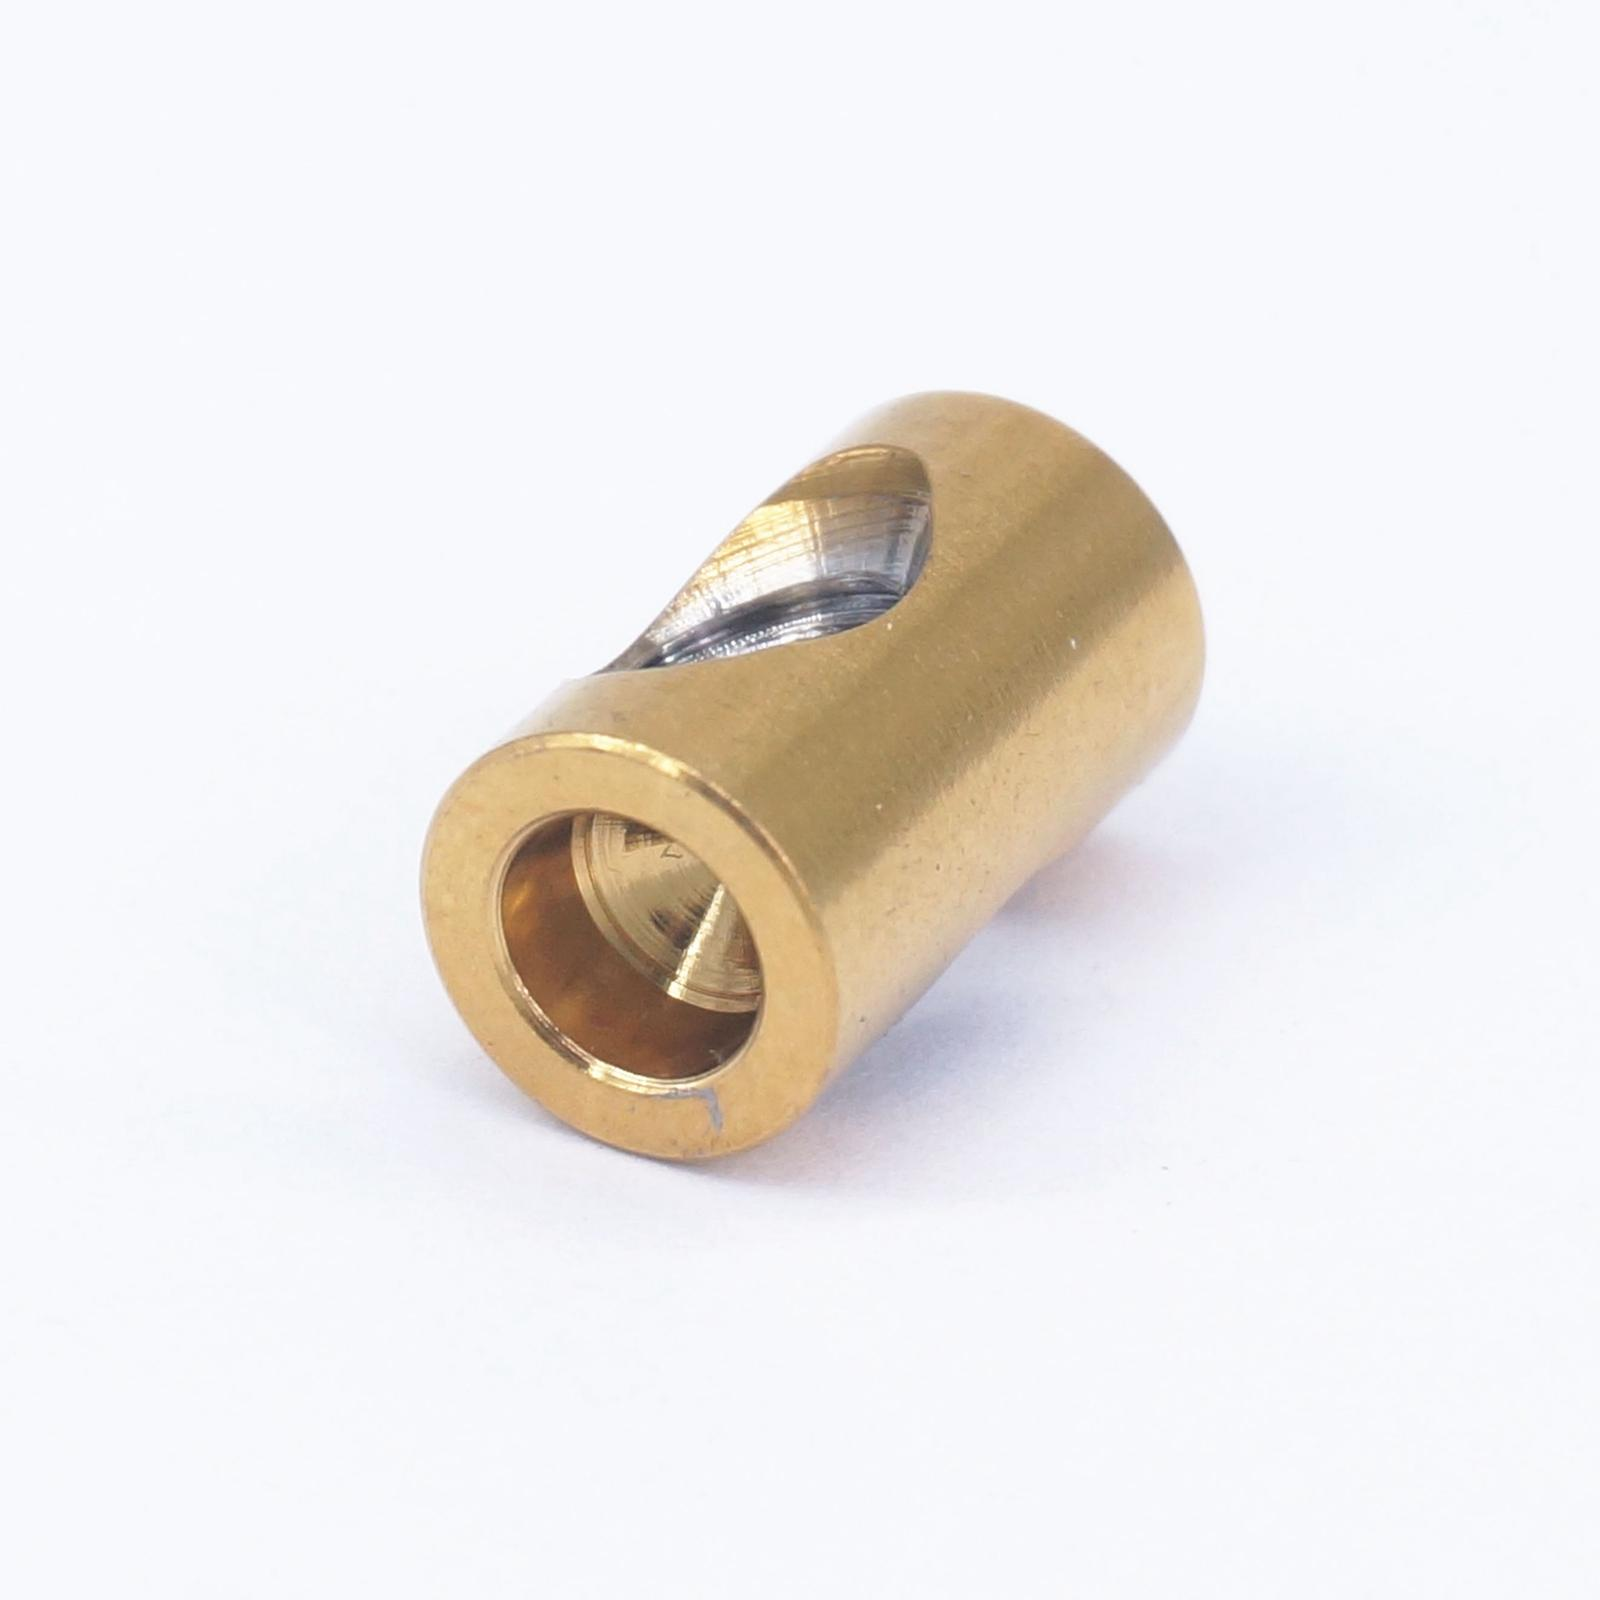 US $2 85 |M6 15x9mm Golden GR5 Titanium Barrel Nut For Bicycle Seat Post-in  Screws from Home Improvement on Aliexpress com | Alibaba Group